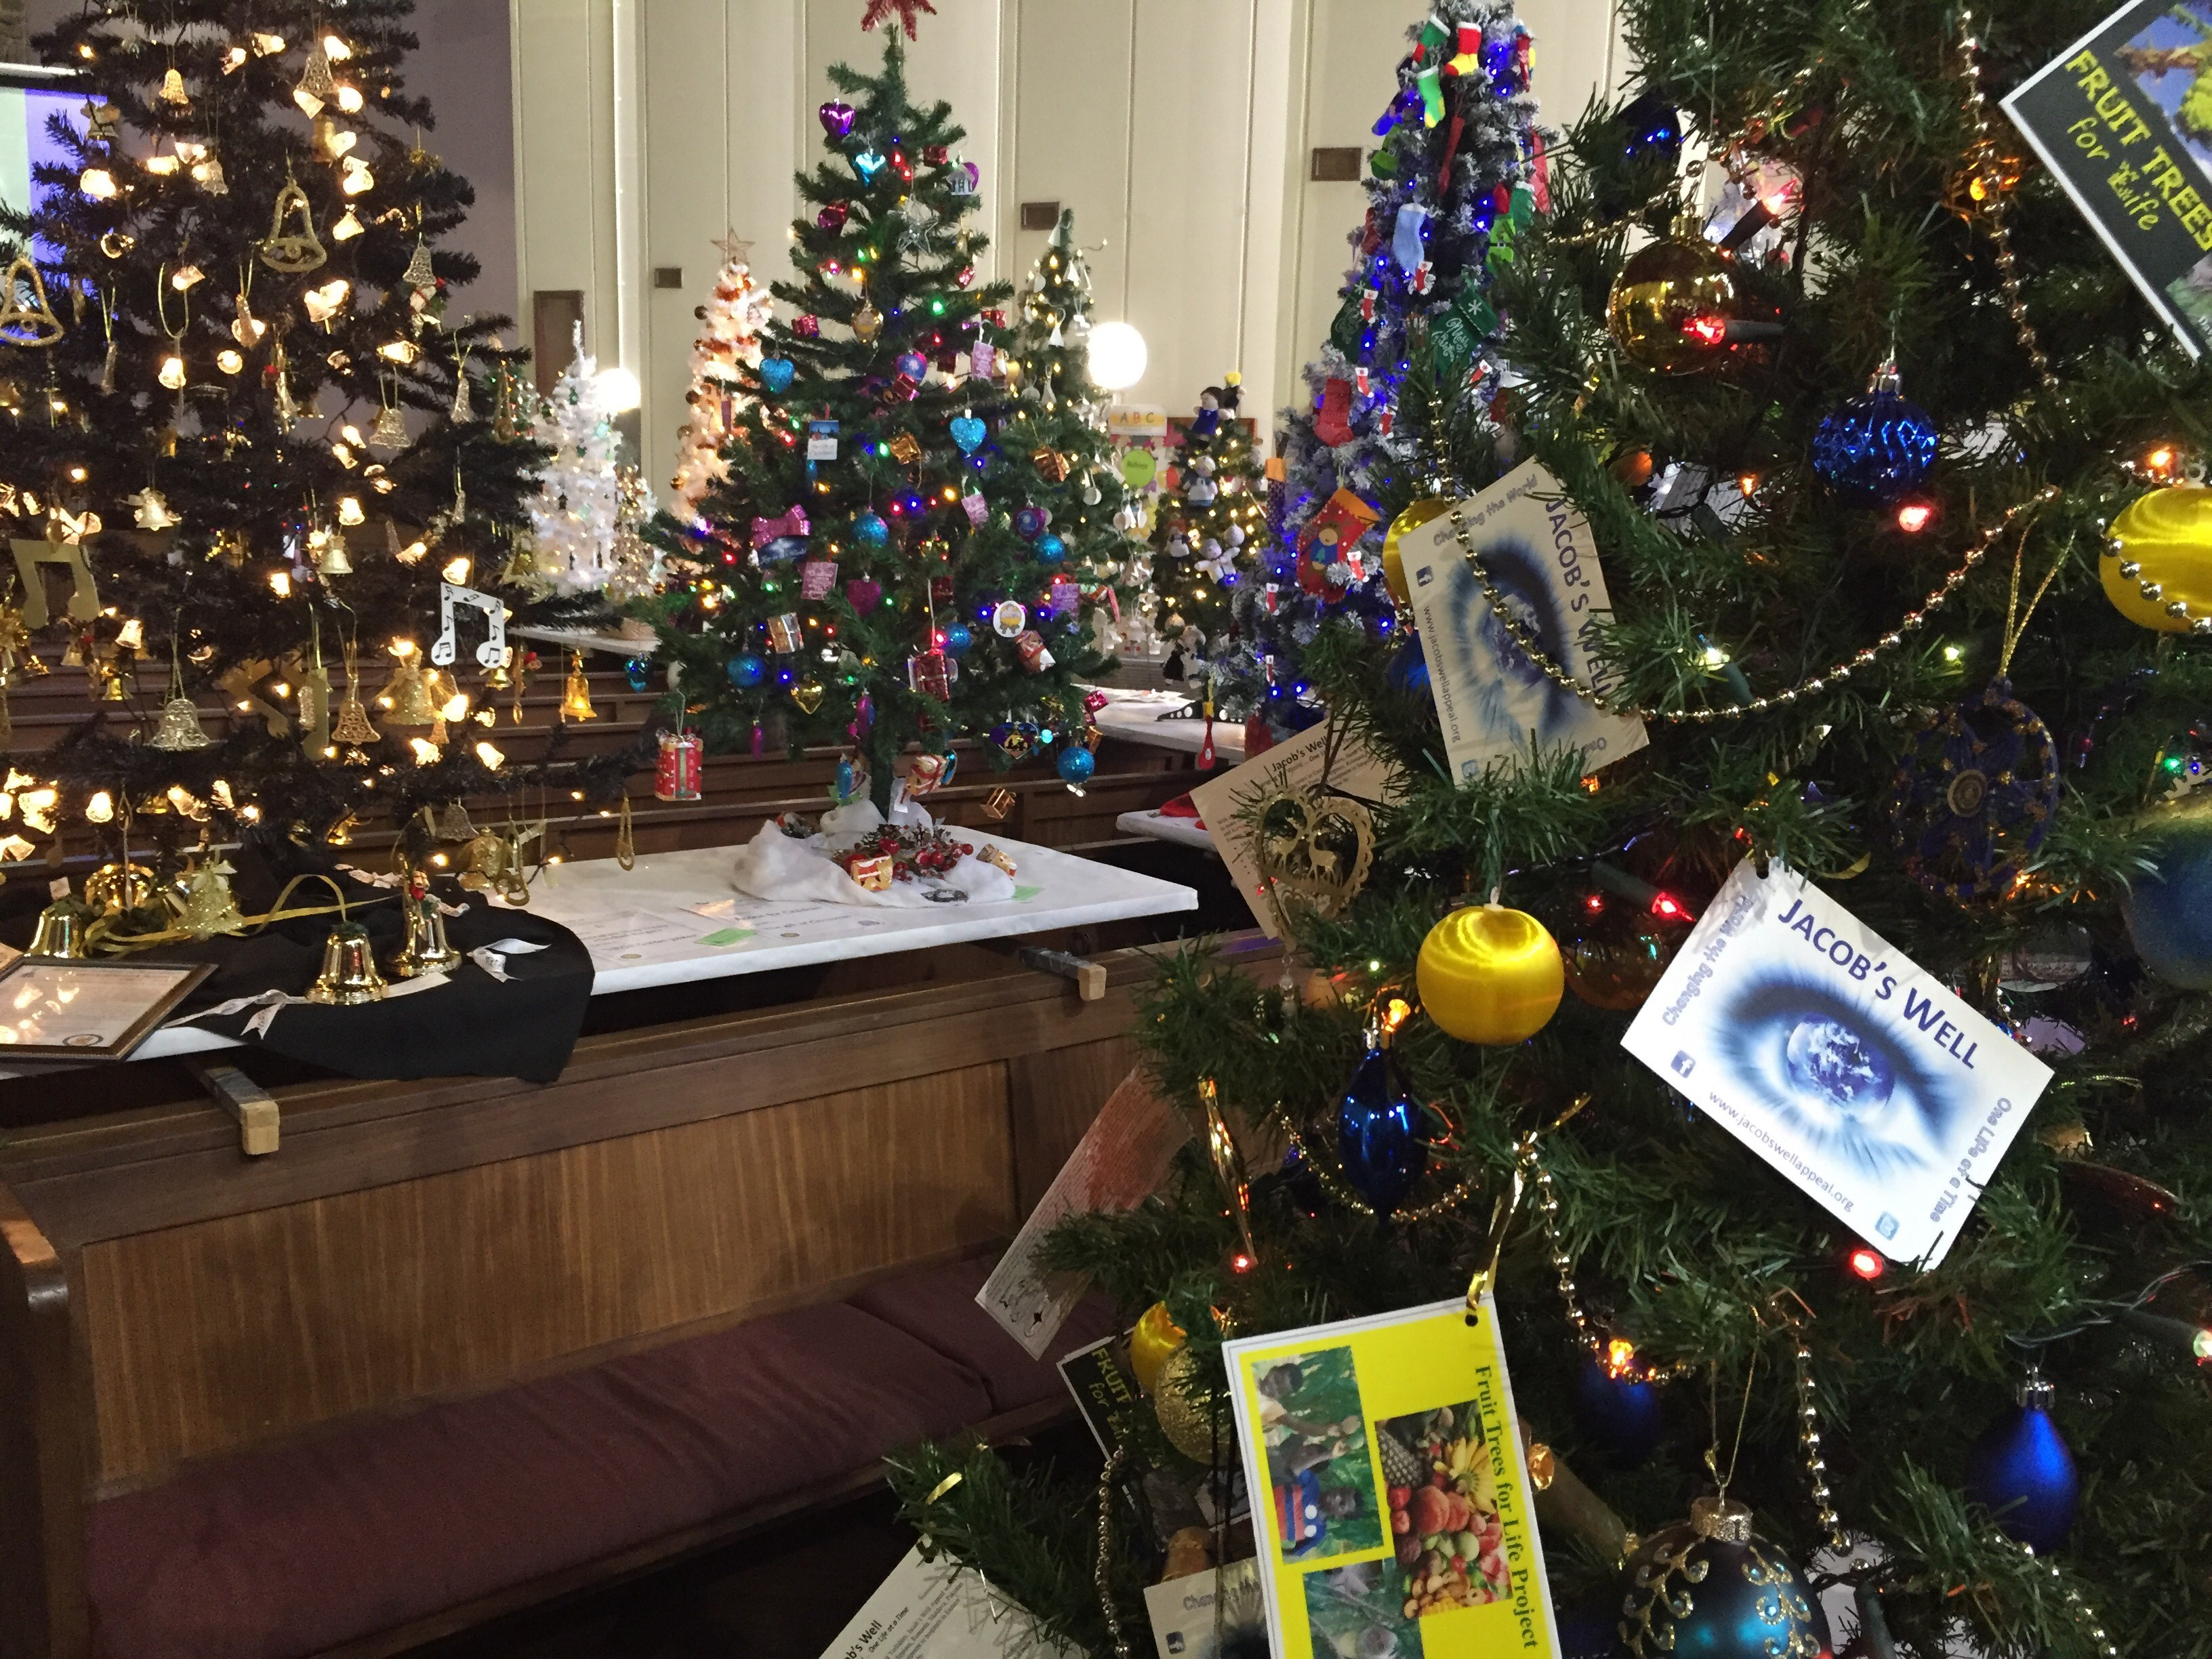 Scunthorpe_Festival_of_Christmas_Trees_at_Old_Brumby_United_Church_(Dec_2017)_Part_2.jpg